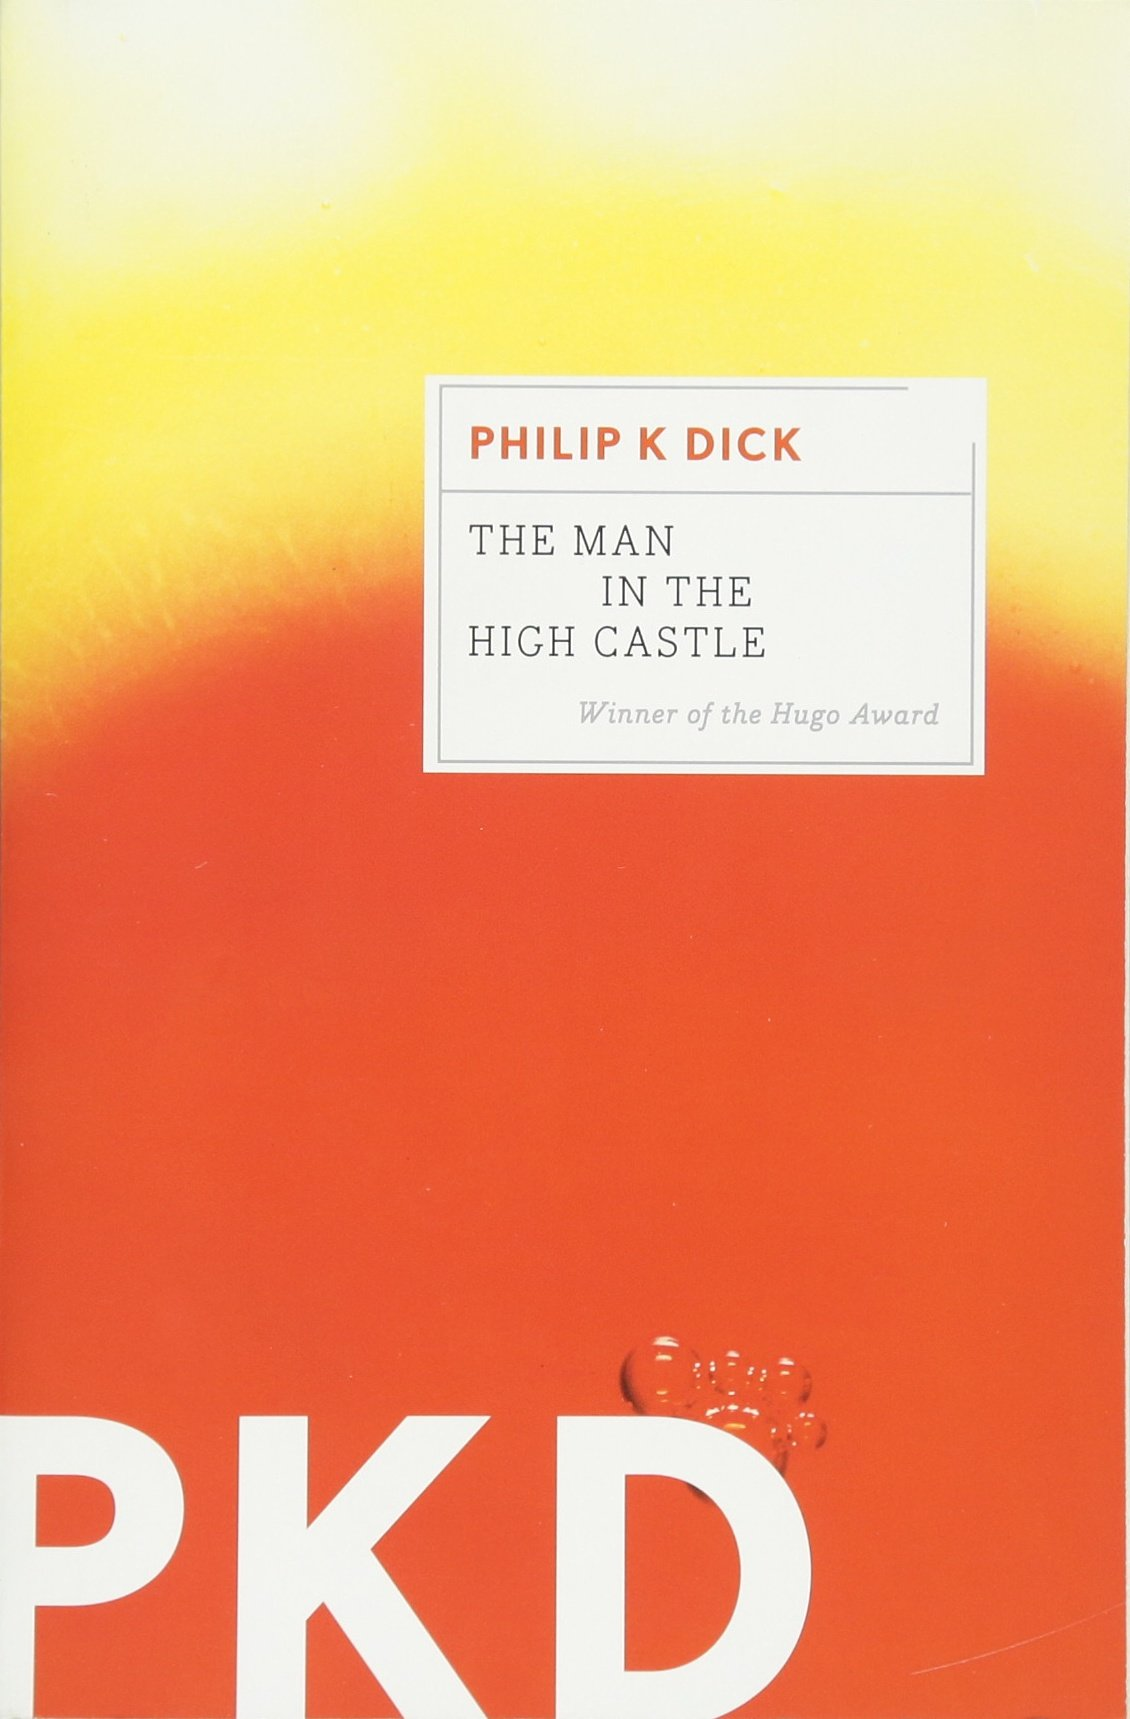 The Man In The High Castle: Philip K Dick: 9780547572482: Amazon: Books